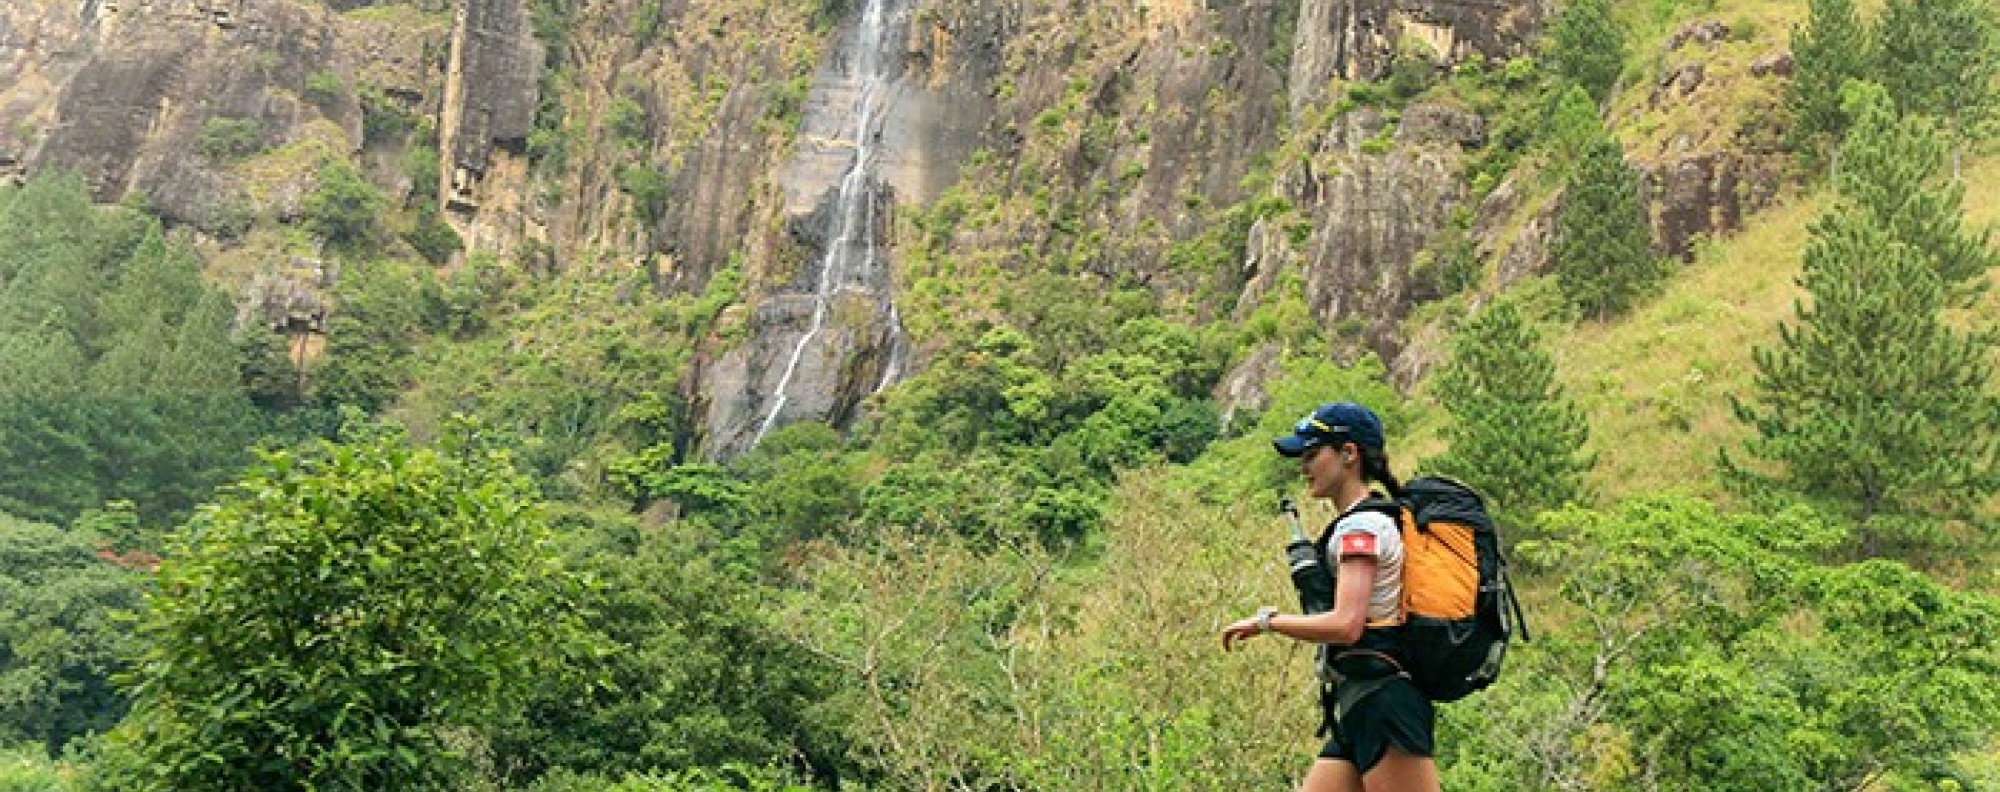 Sarah Pemberton runs the 4 Deserts Sri Lanka 250km stage race – she has ditched her training programme to rediscover her love of running. Photo: Myke Hermsmeyer